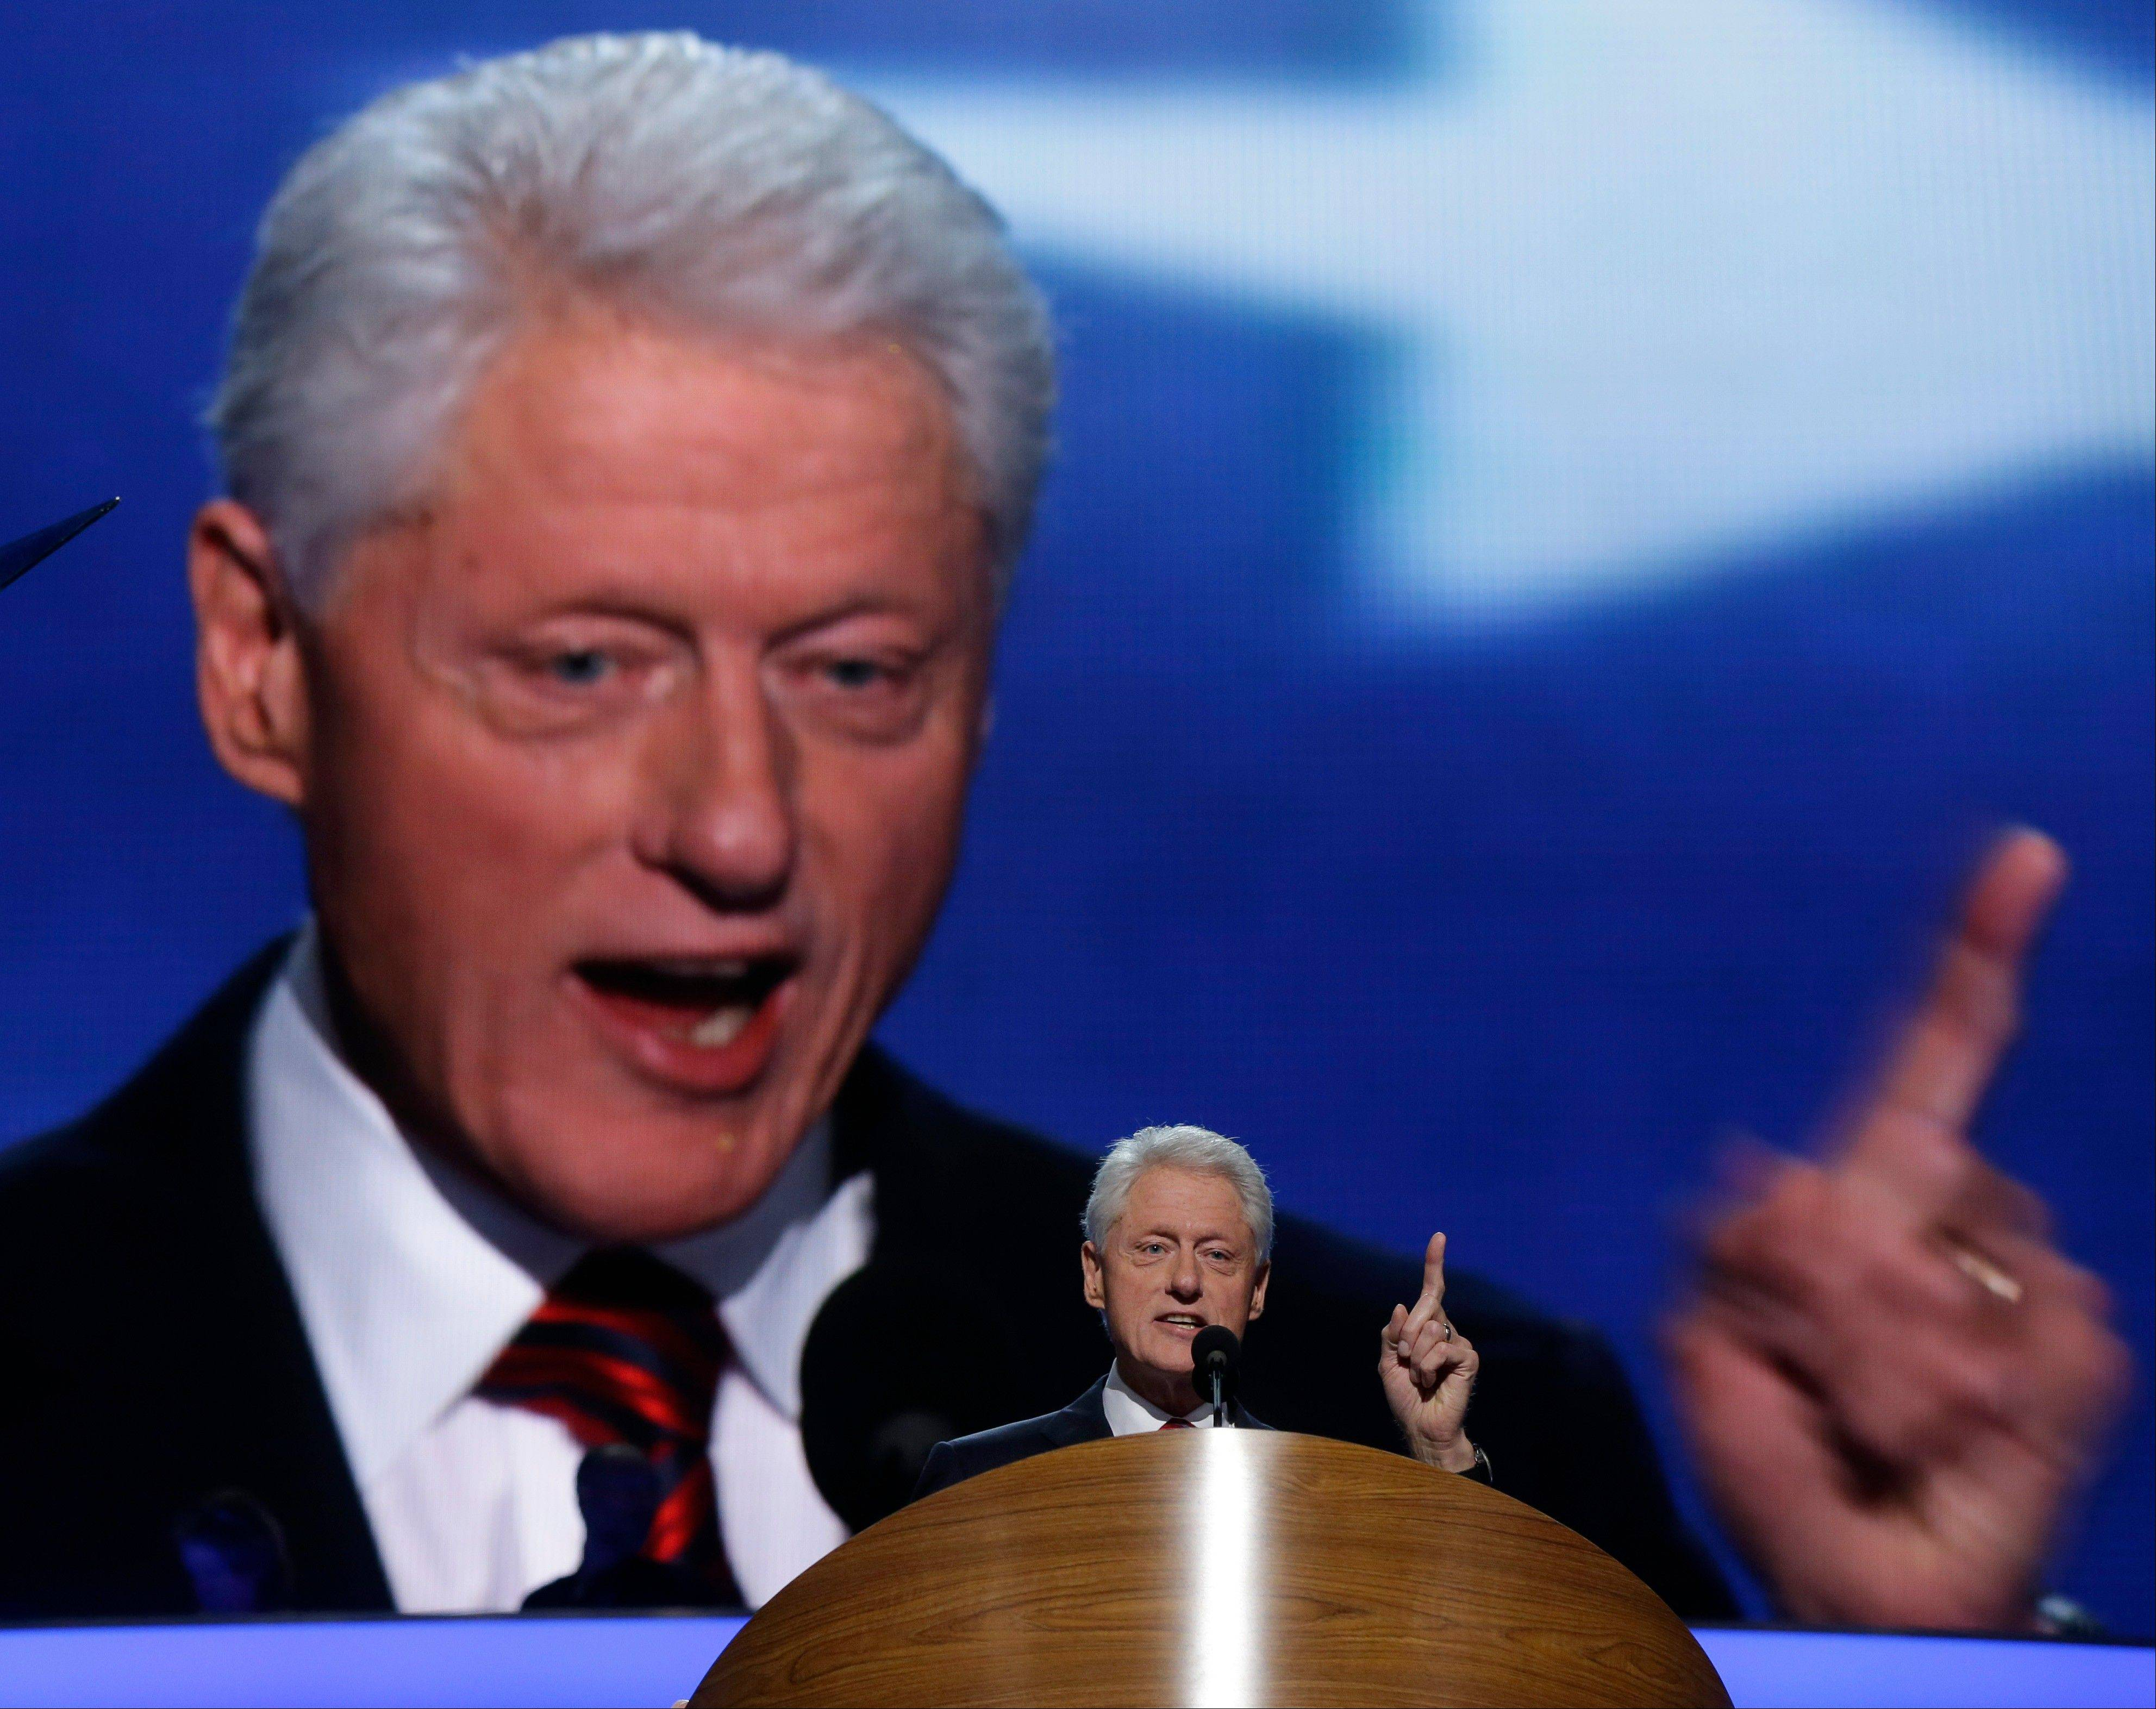 Former President Bill Clinton addresses the Democratic National Convention in Charlotte, N.C., Wednesday night.